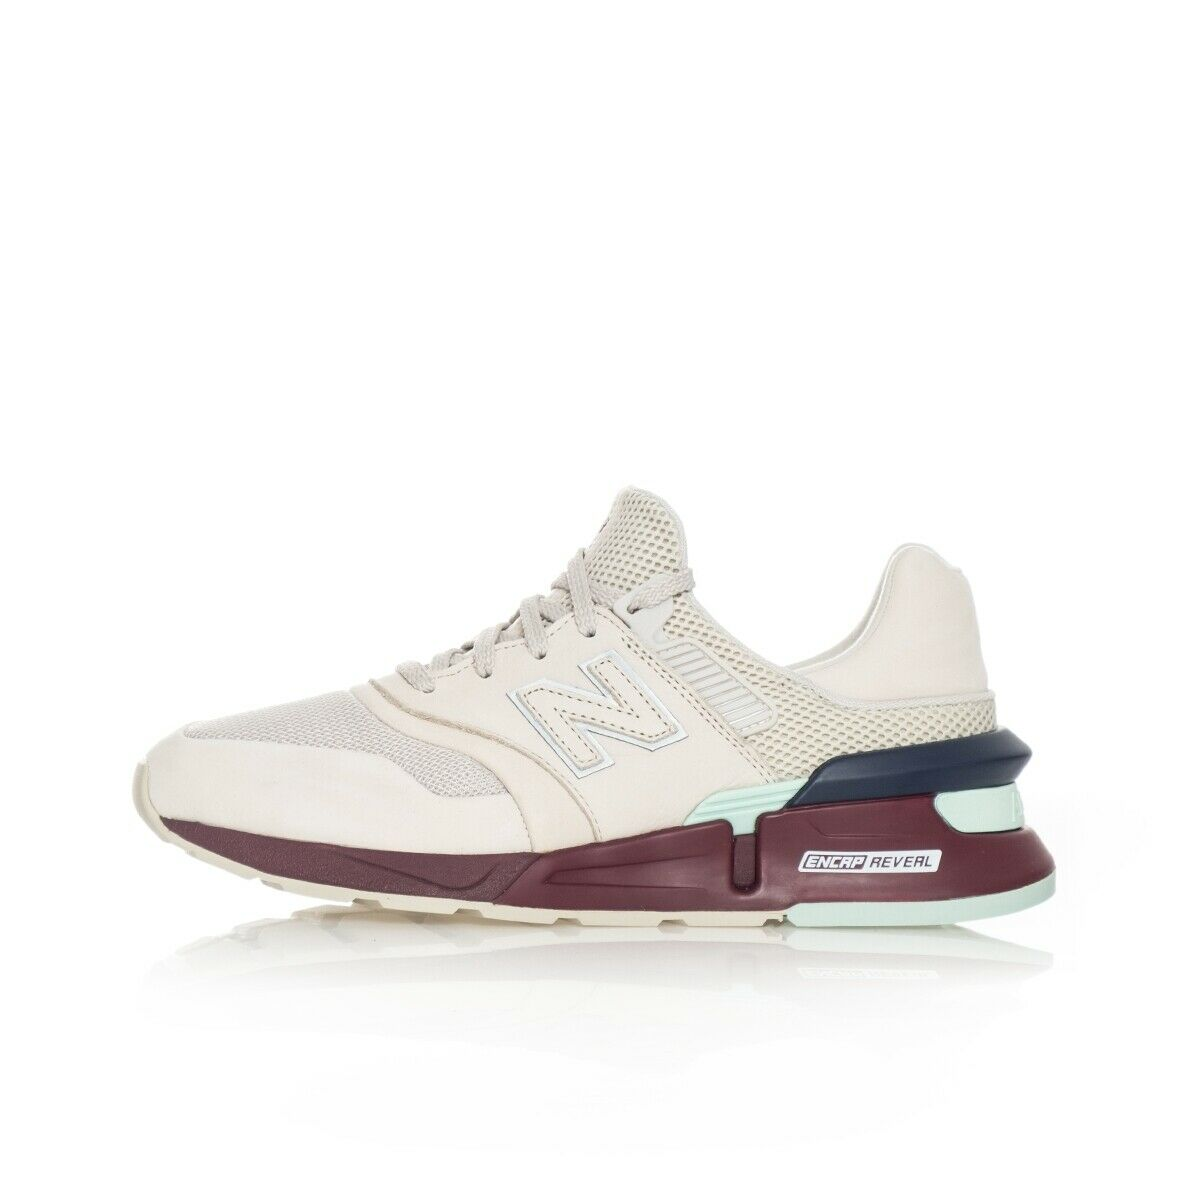 MAN NEW BALANCE 997 LIFESTYLE MS997HG SNEAKERS  GREY